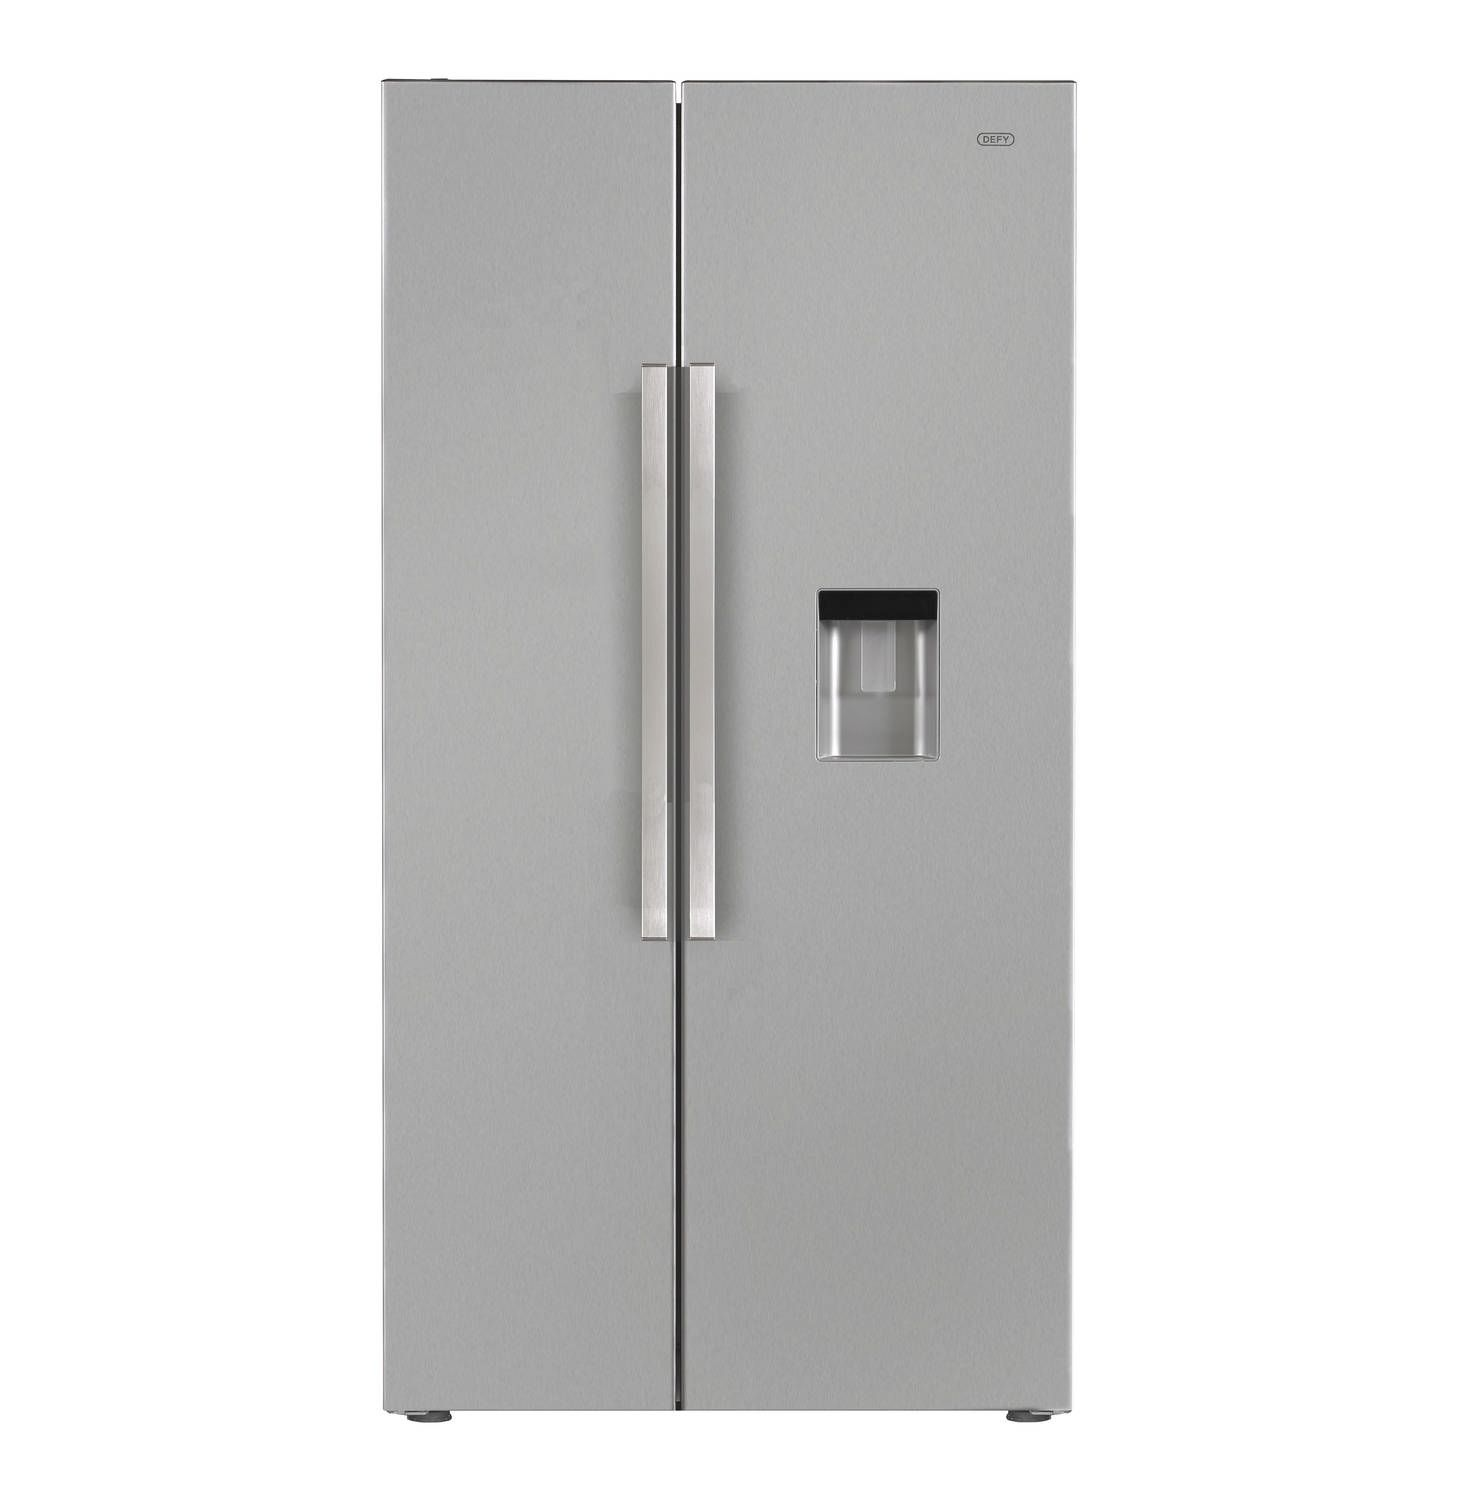 Uncategorized Defy Kitchen Appliances defy side by fridgefreezer with water dispenser makro online